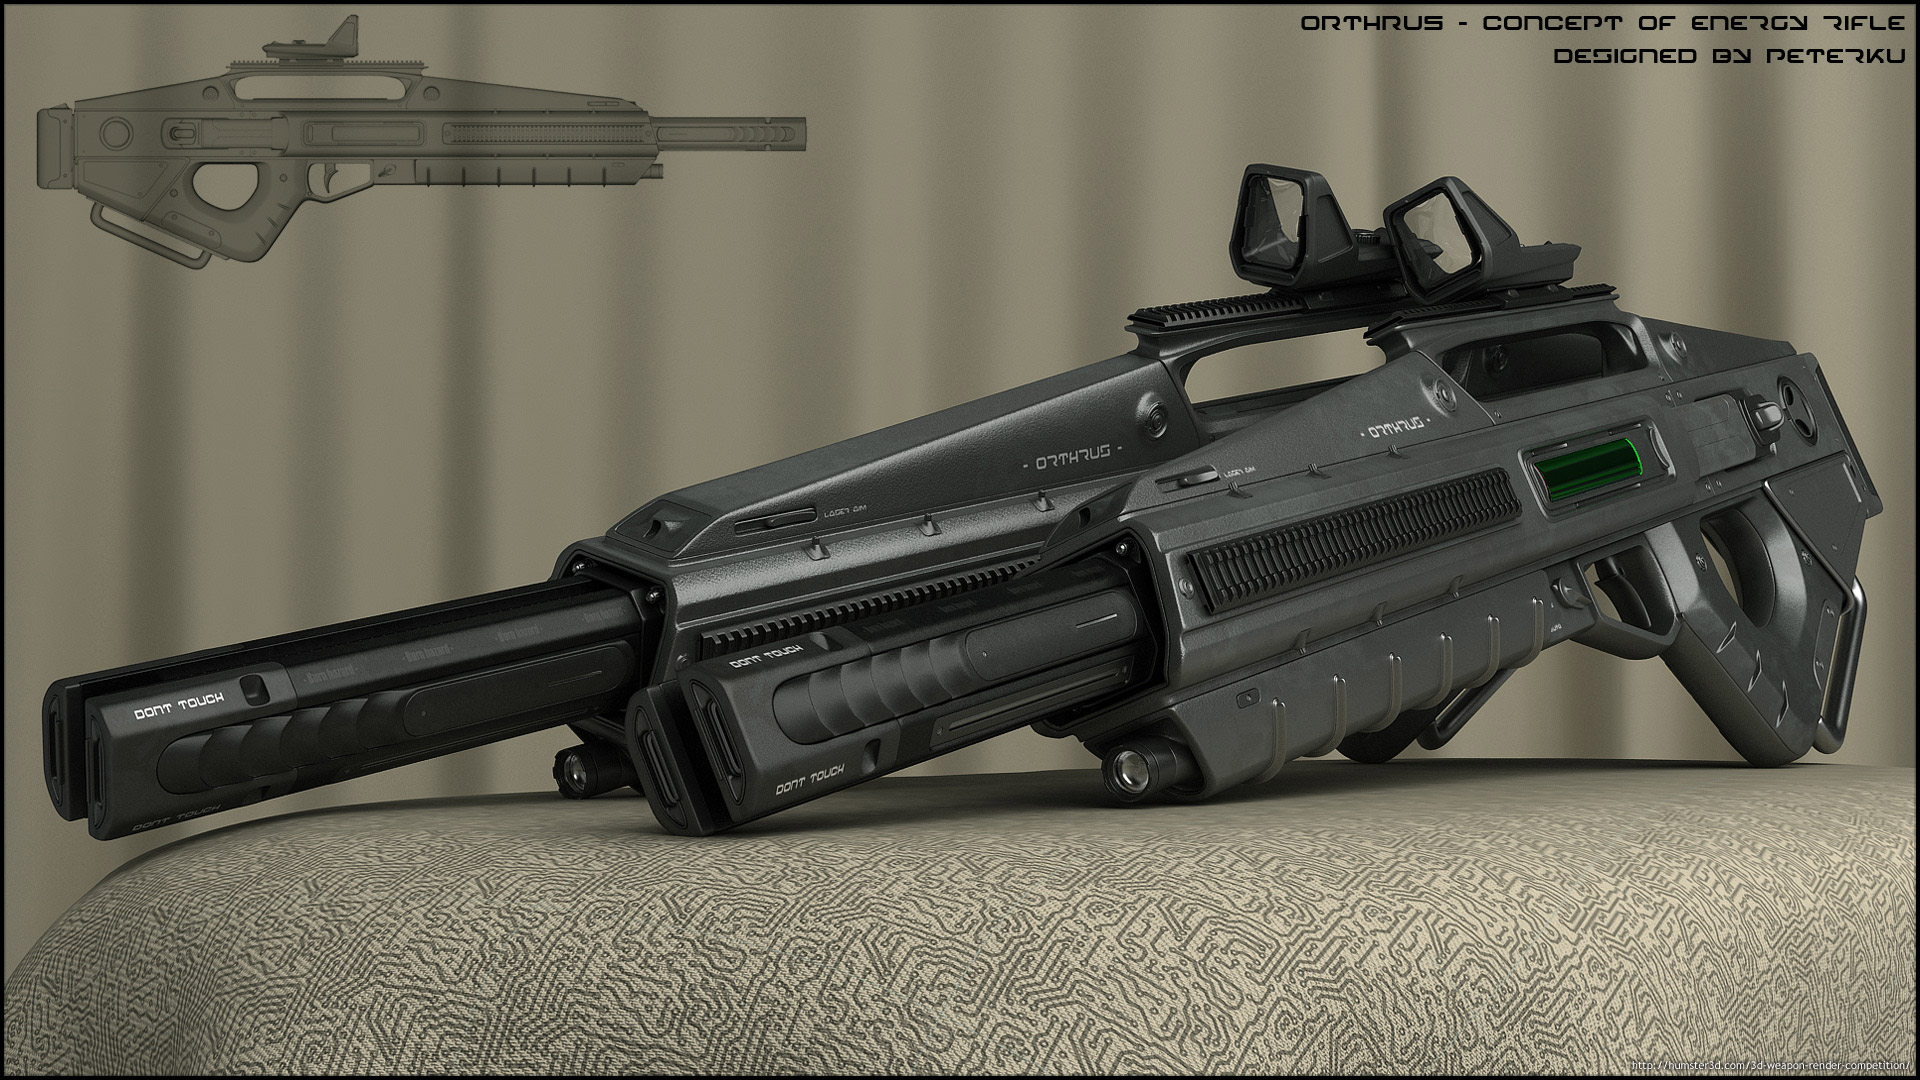 Orthrus – concept of energy rifle 3d art